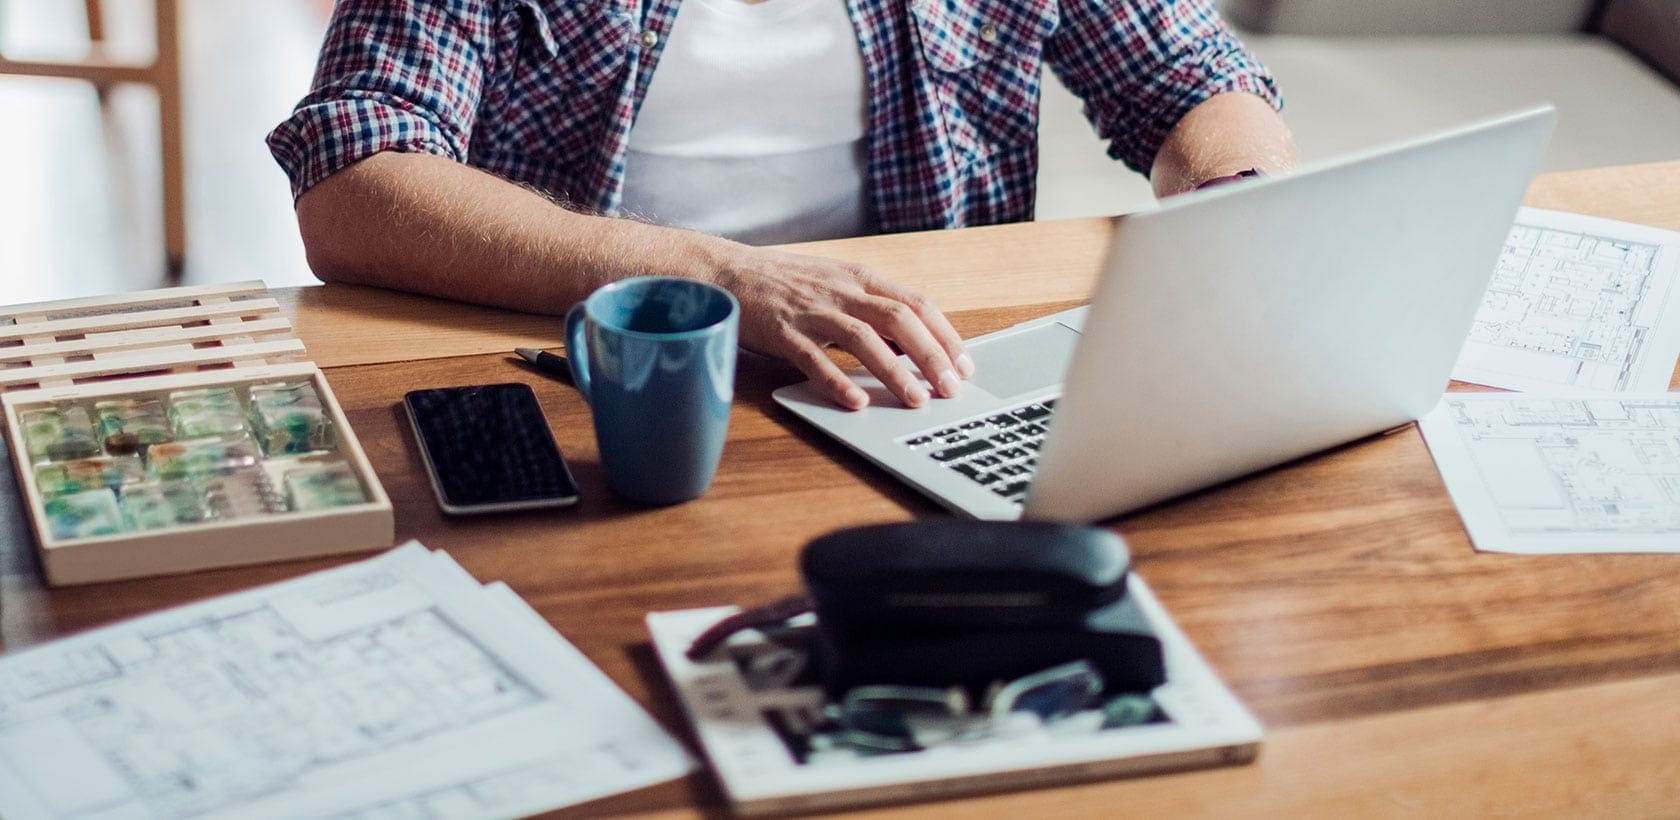 38 Freelance Statistics to Know in 2021